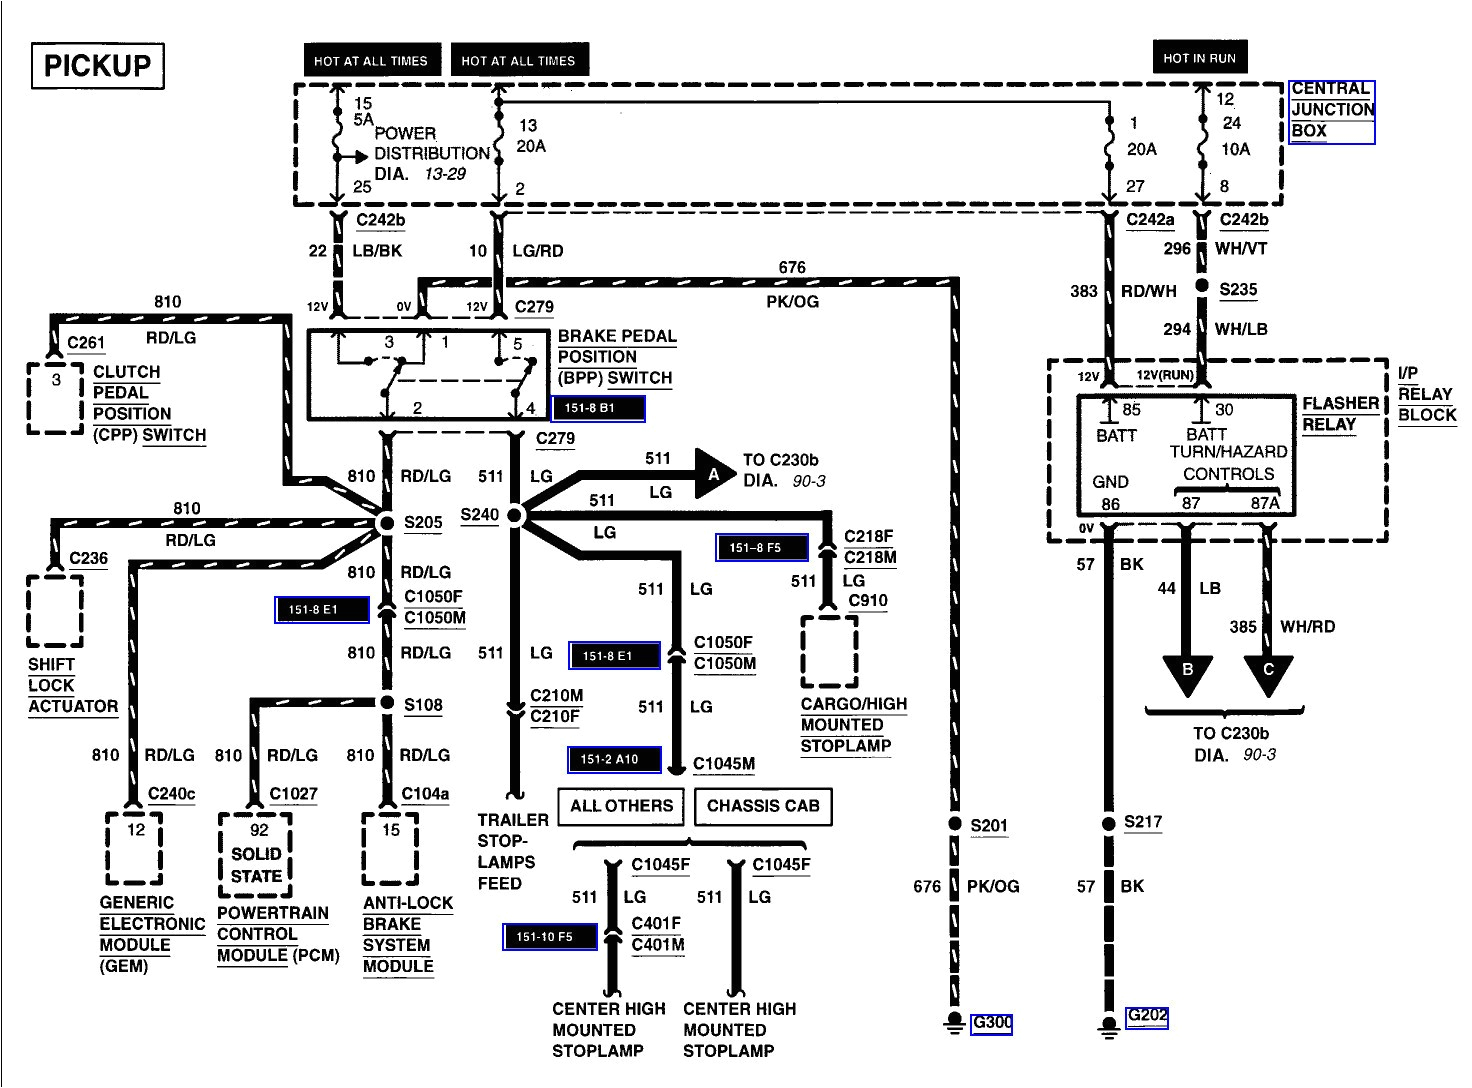 2001 ford f250 wiring diagram inspirational 2001 f350 wiring diagram daigram in ford of 2001 ford f250 wiring diagram jpg